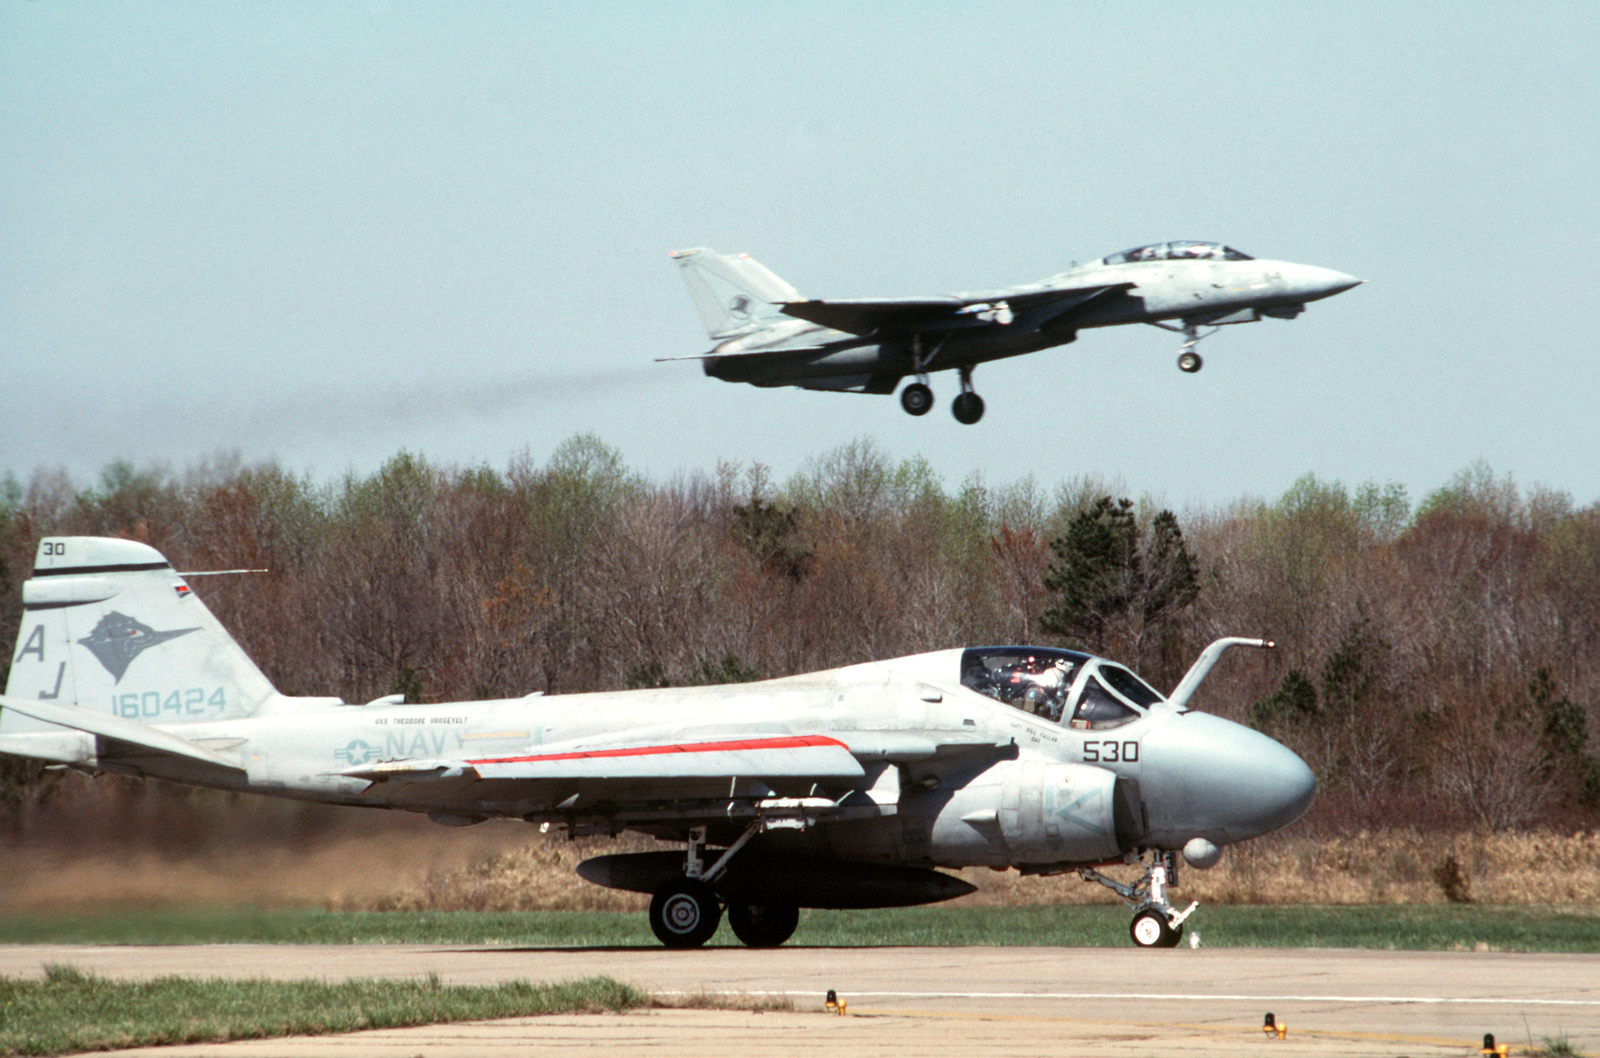 An Attack Squadron 36 (VA-36) A-6E Intruder aircraft rolls along a runway as a Fighter Squadron 14 (VF-14) F-14A Tomcat aircraft passes overhead